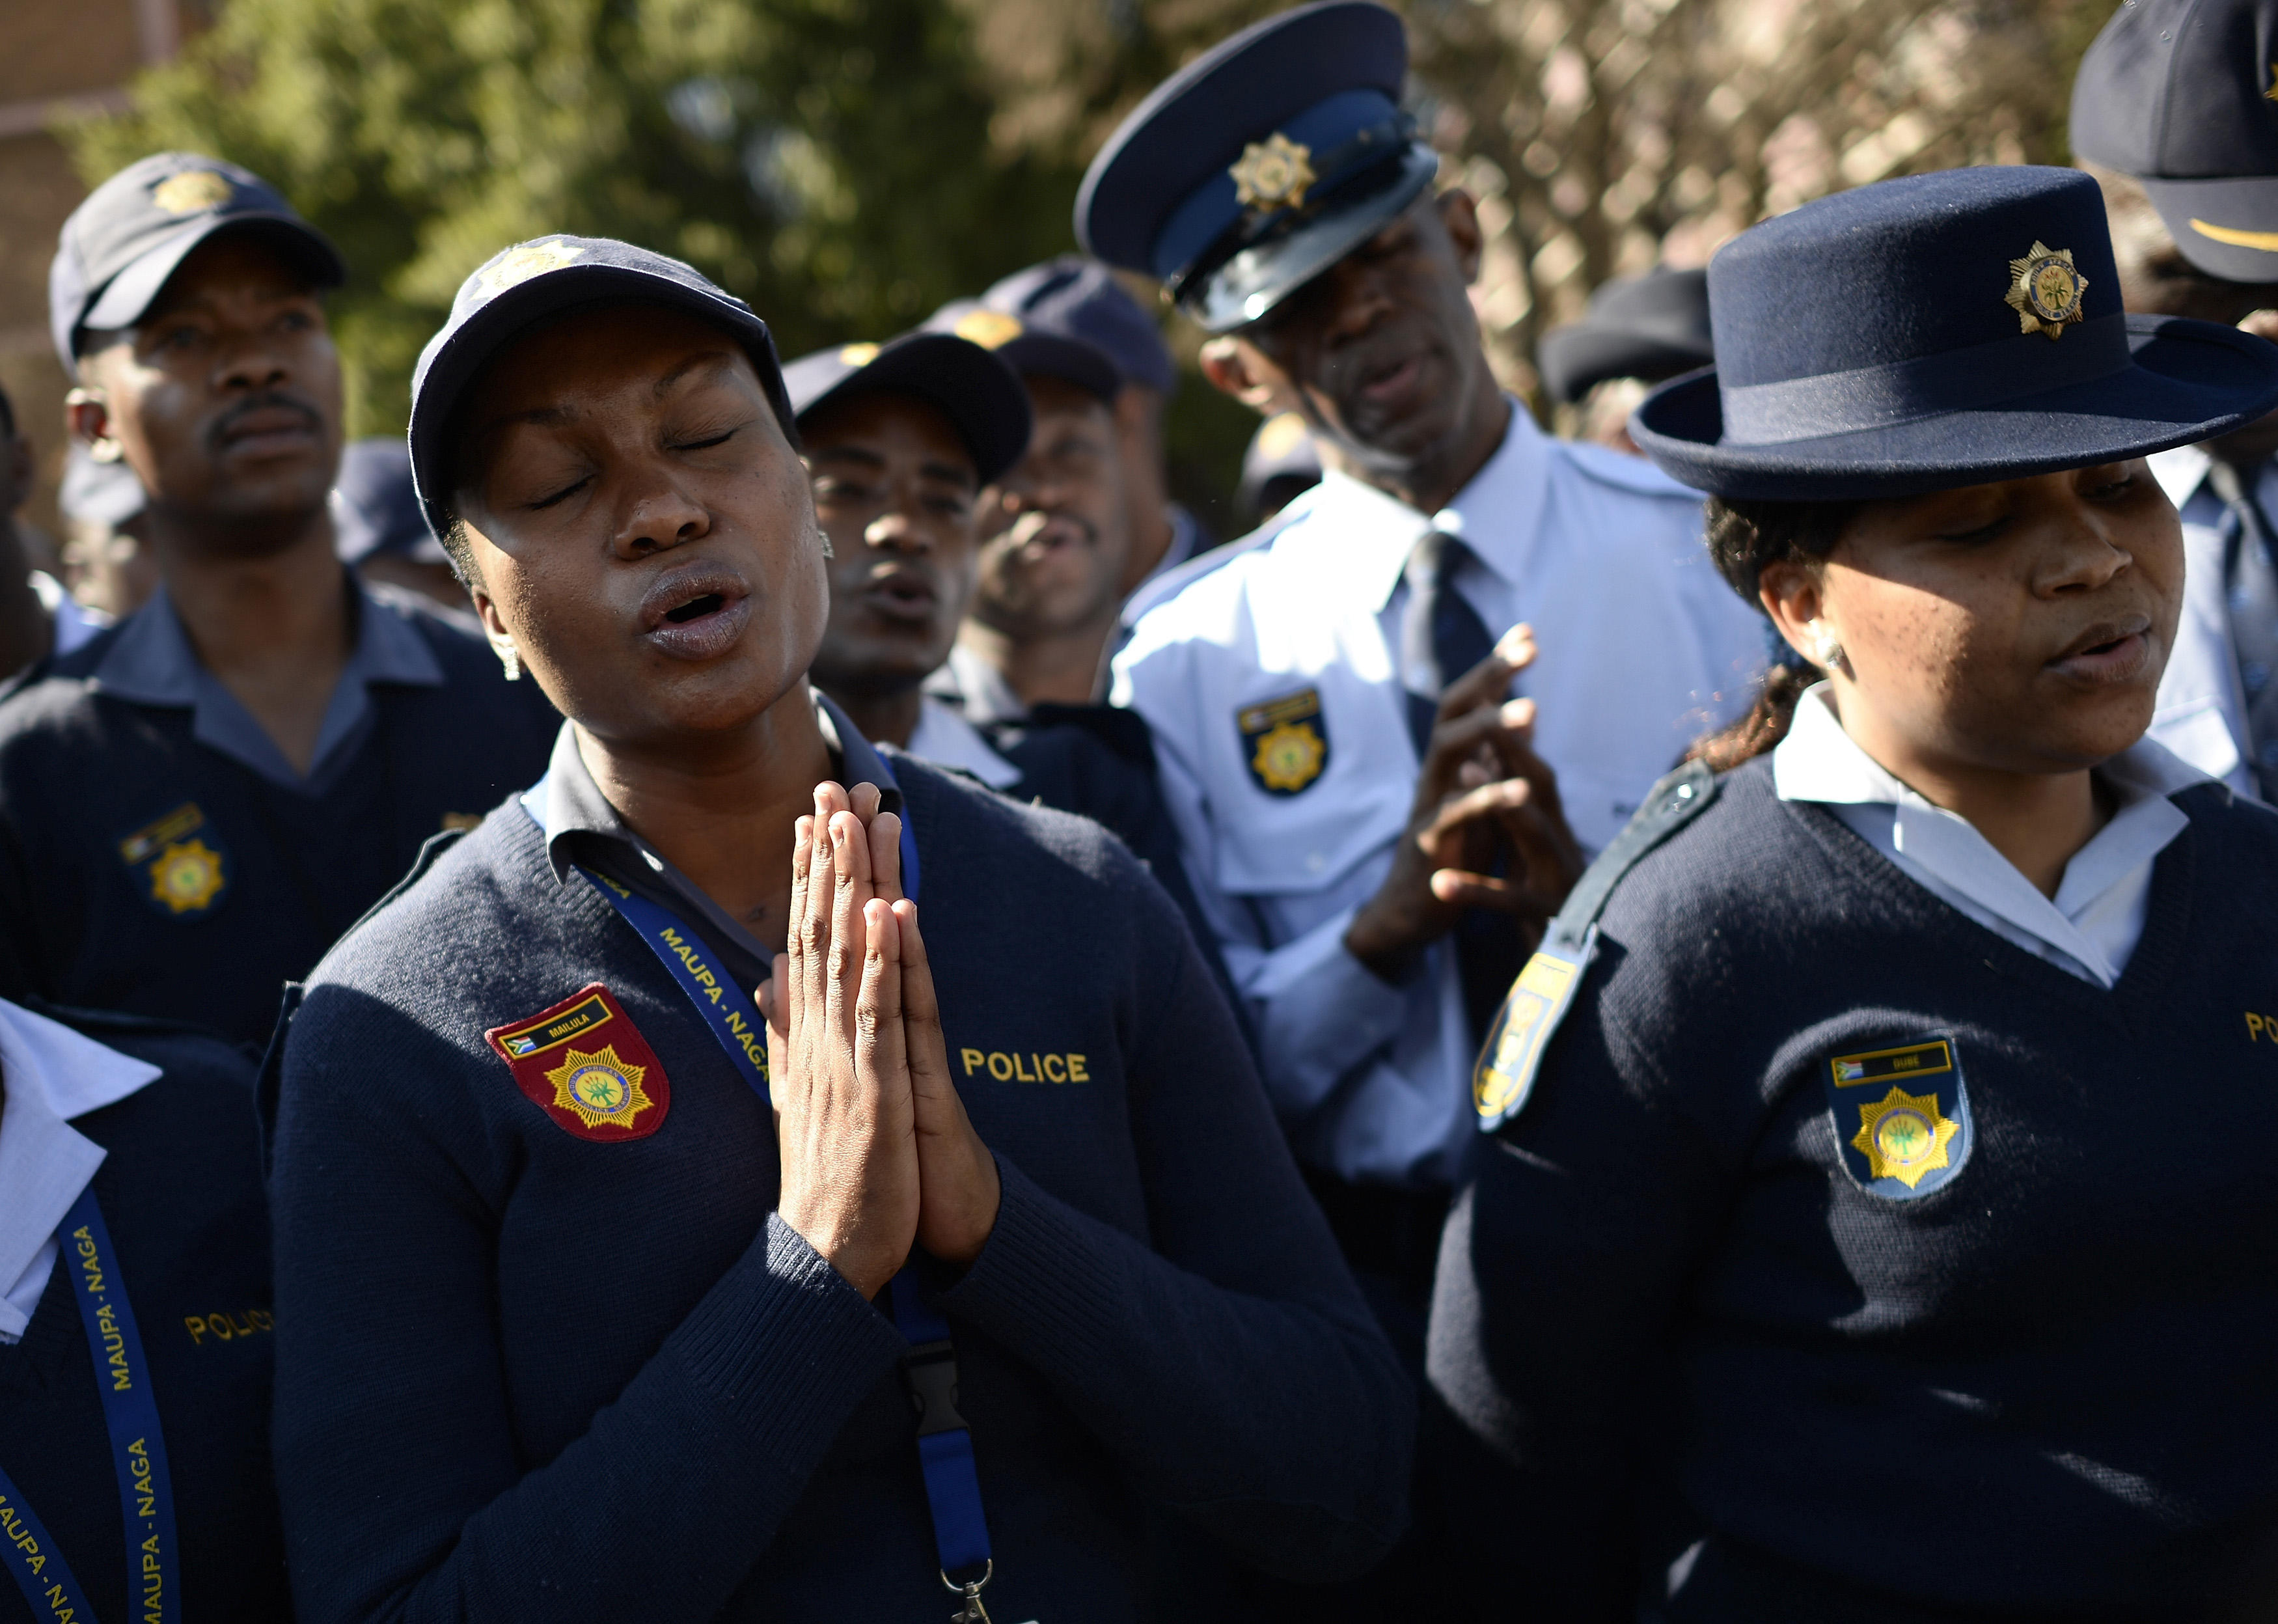 Police pictures south africa South African Police Service - Wikipedia